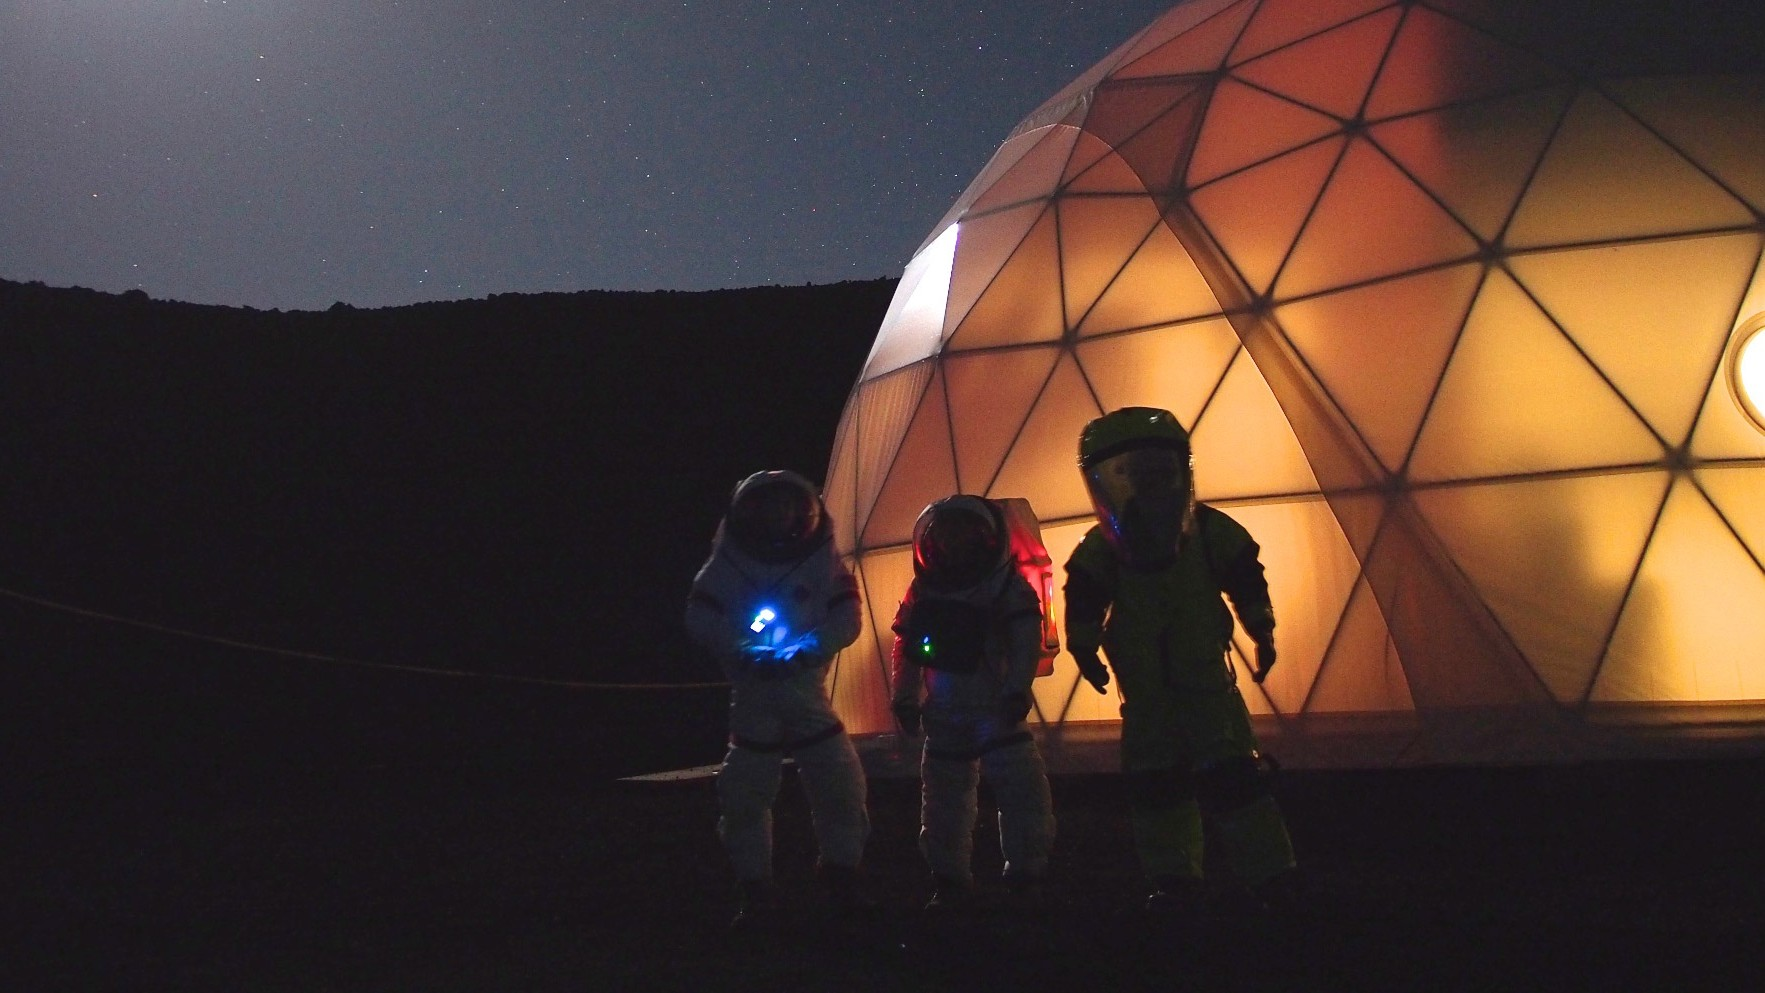 Watch Explorers Return to 'Earth' After Living on a Simulated Mars for 4 Months